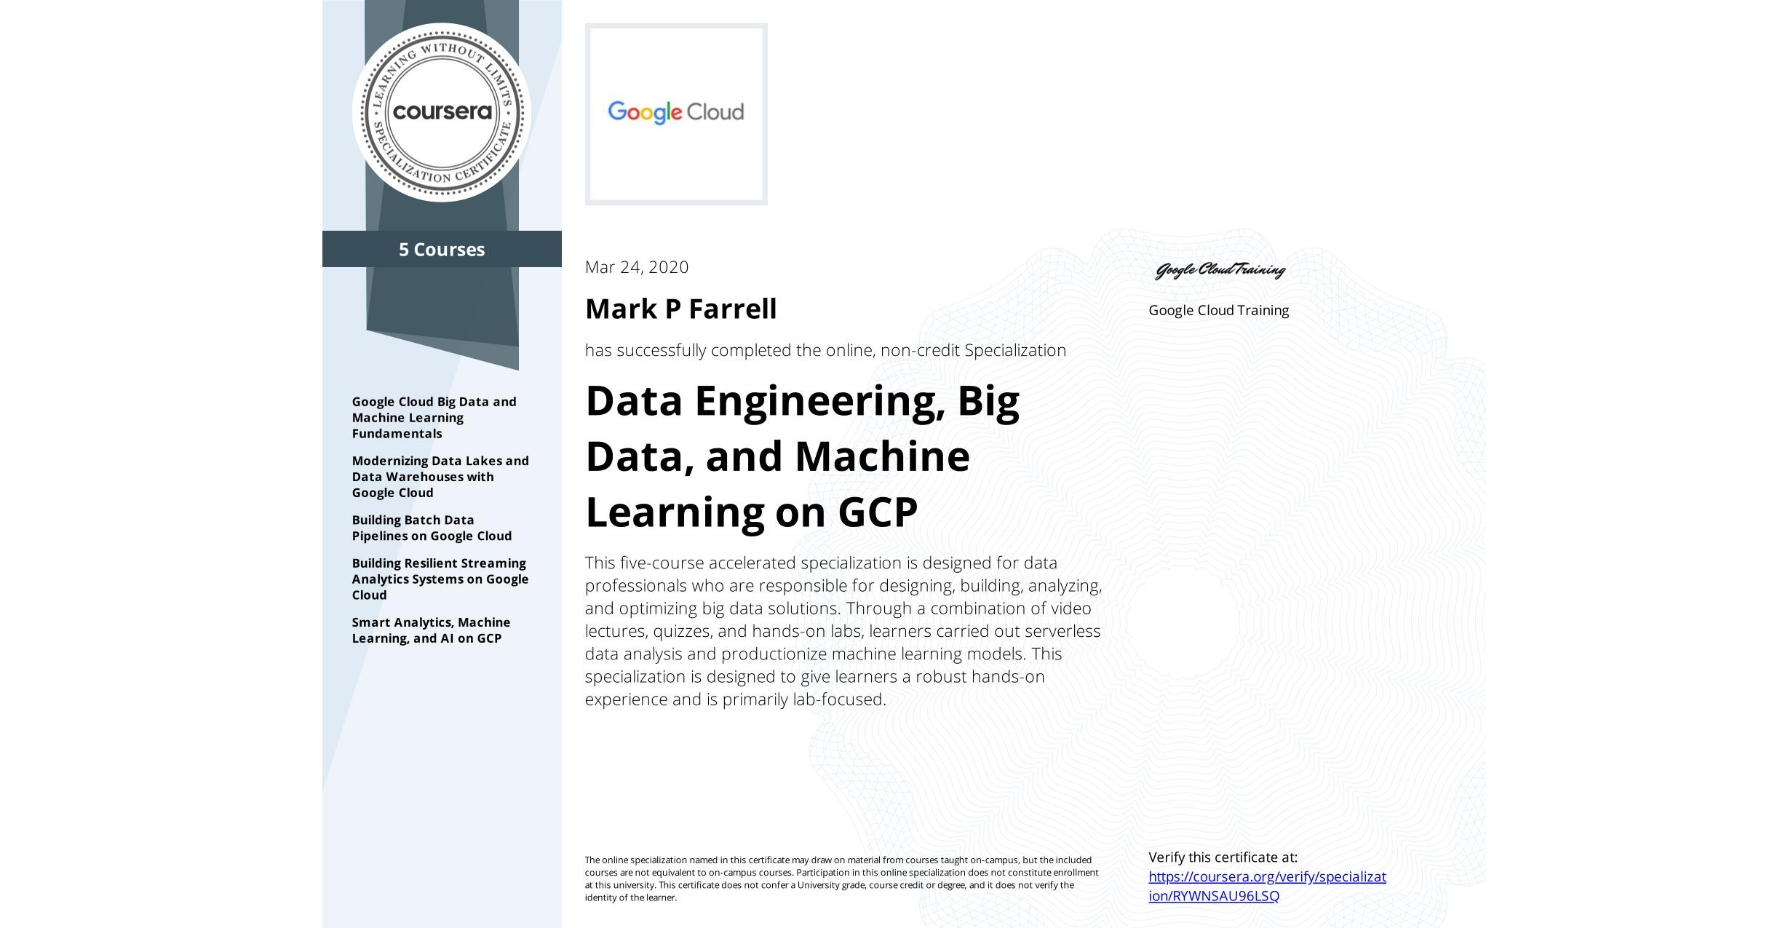 View certificate for Mark P Farrell, Data Engineering, Big Data, and Machine Learning on GCP, offered through Coursera. This five-course accelerated specialization is designed for data professionals who are responsible for designing, building, analyzing, and optimizing big data solutions. Through a combination of video lectures, quizzes, and hands-on labs, learners carried out serverless data analysis and productionize machine learning models. This specialization is designed to give learners a robust hands-on experience and is primarily lab-focused.